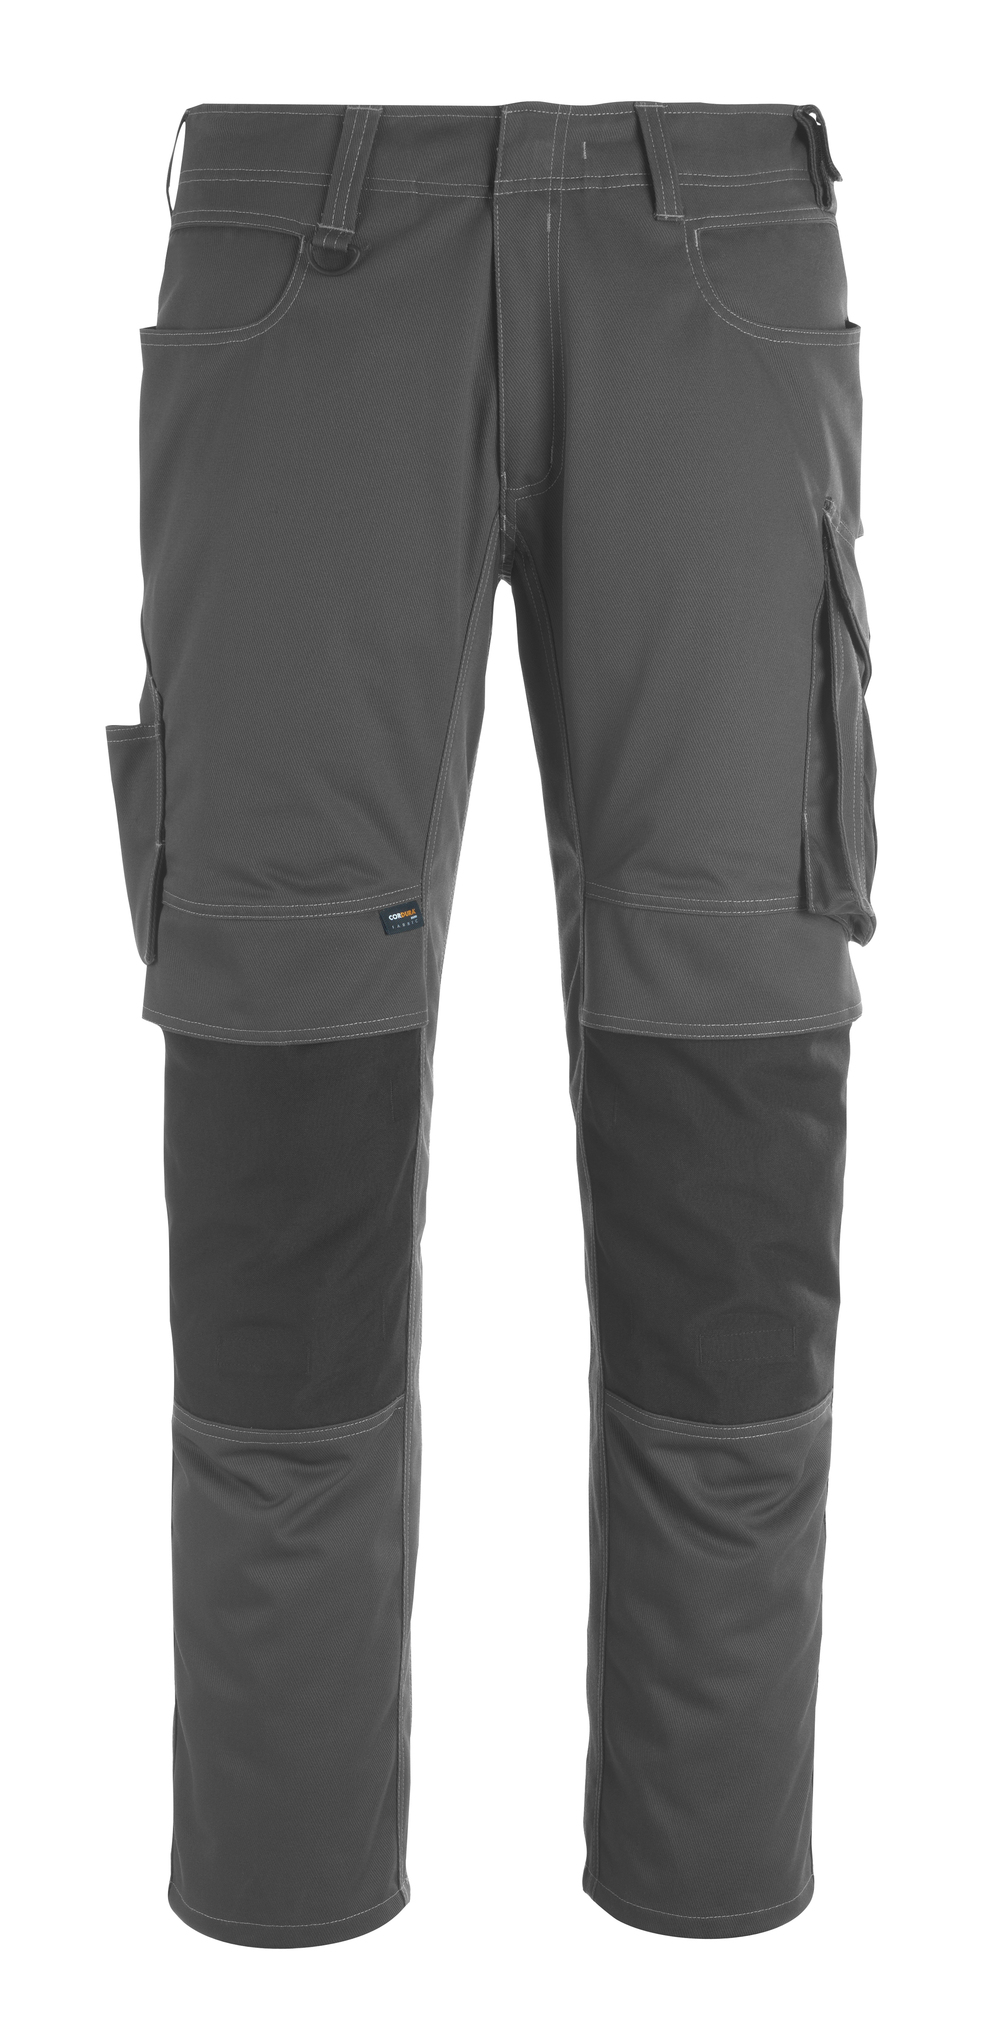 MASCOT ERLANGEN KNEEPAD PANTS TWO-TONED